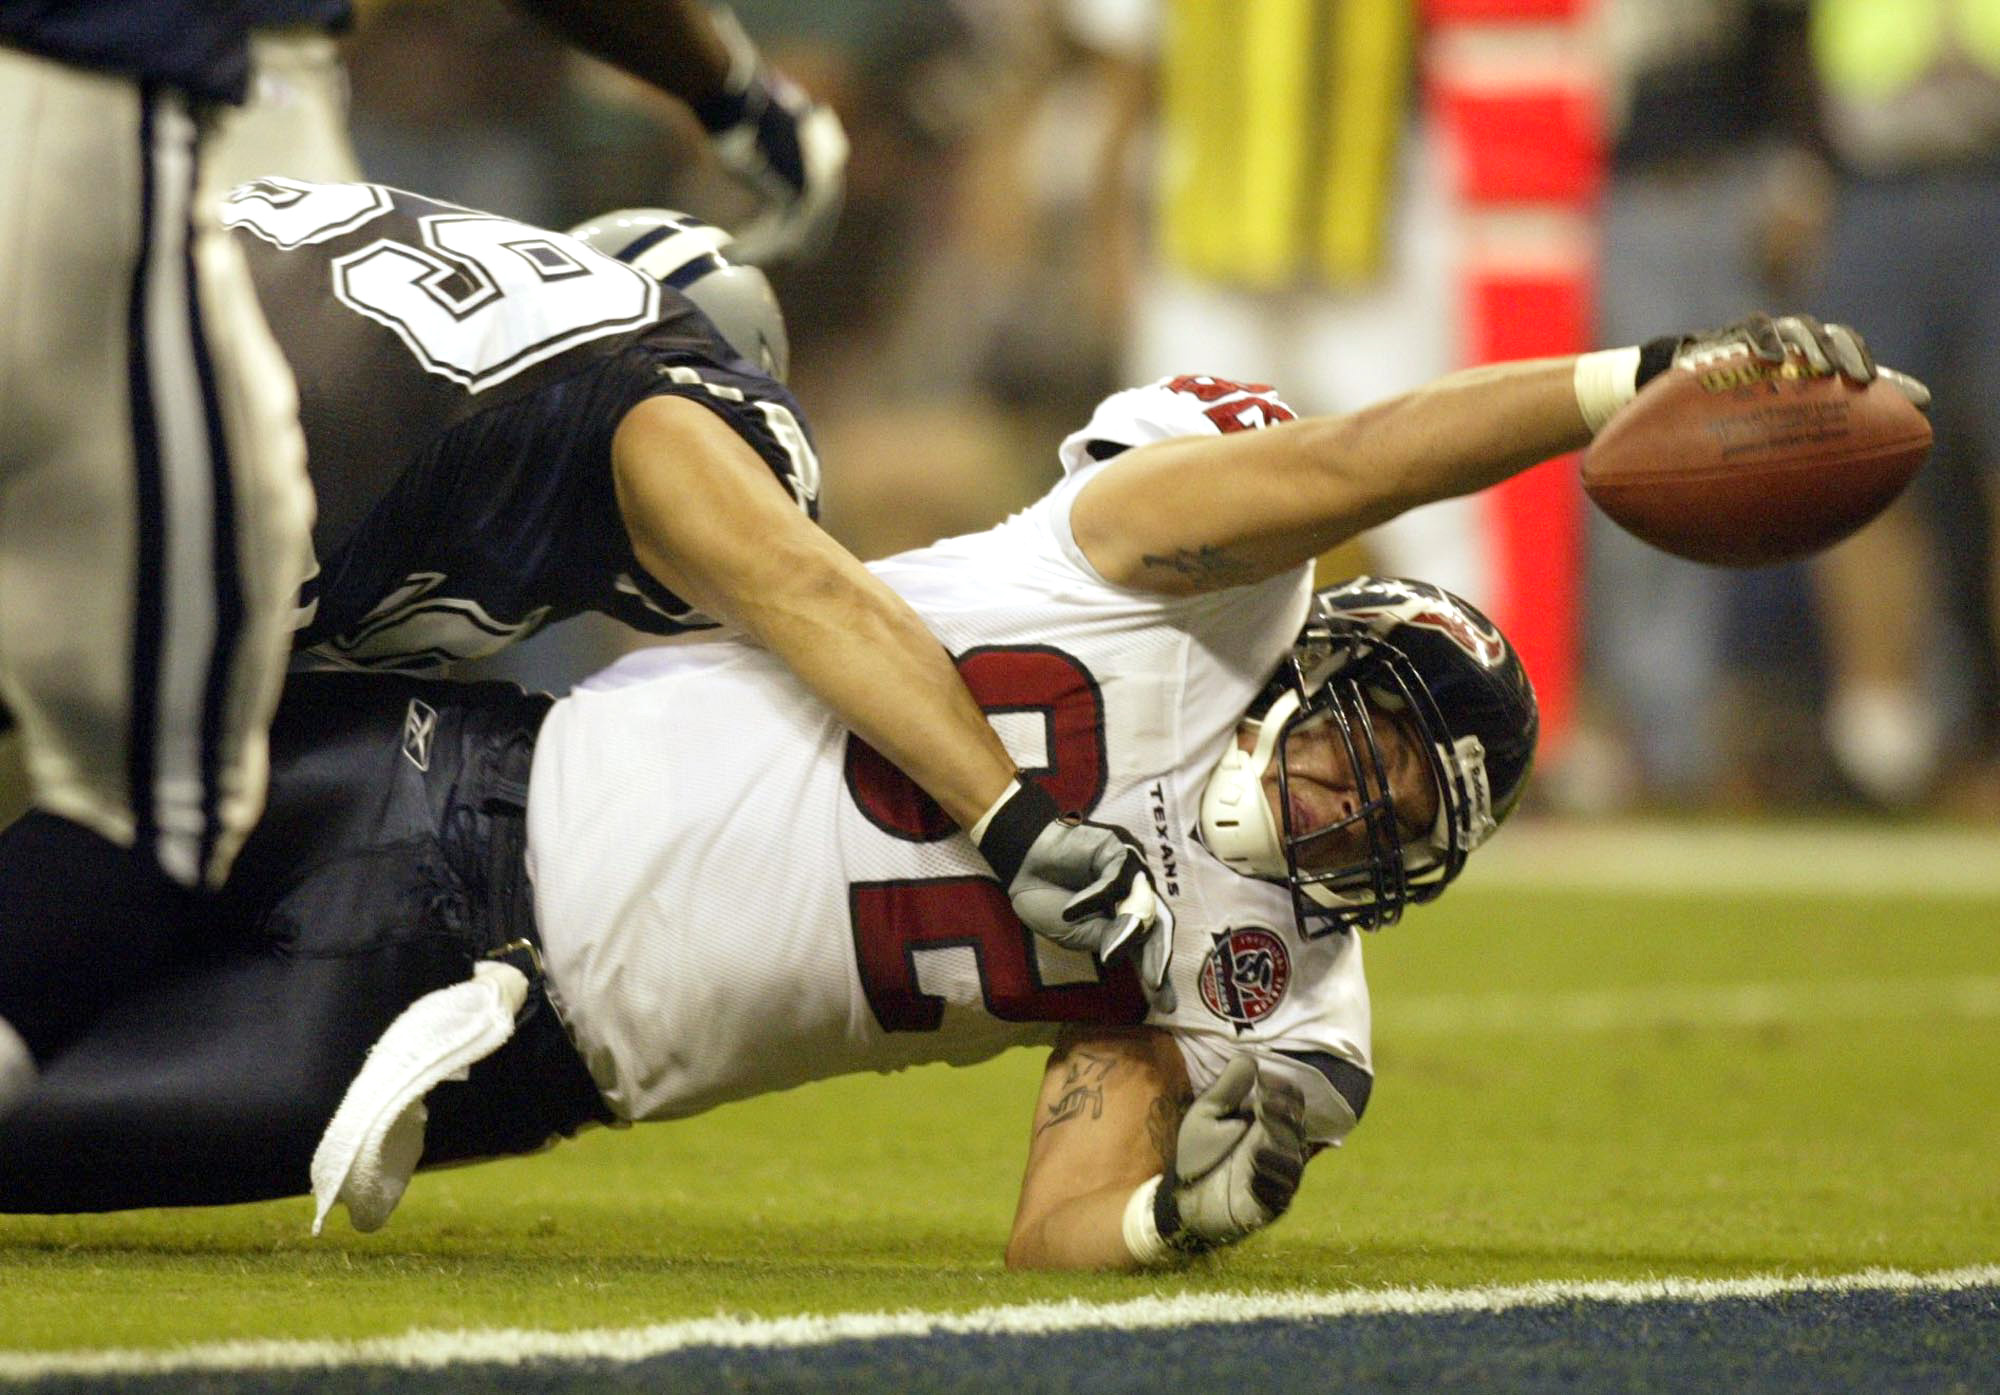 Texans Miller stretches for touchdown